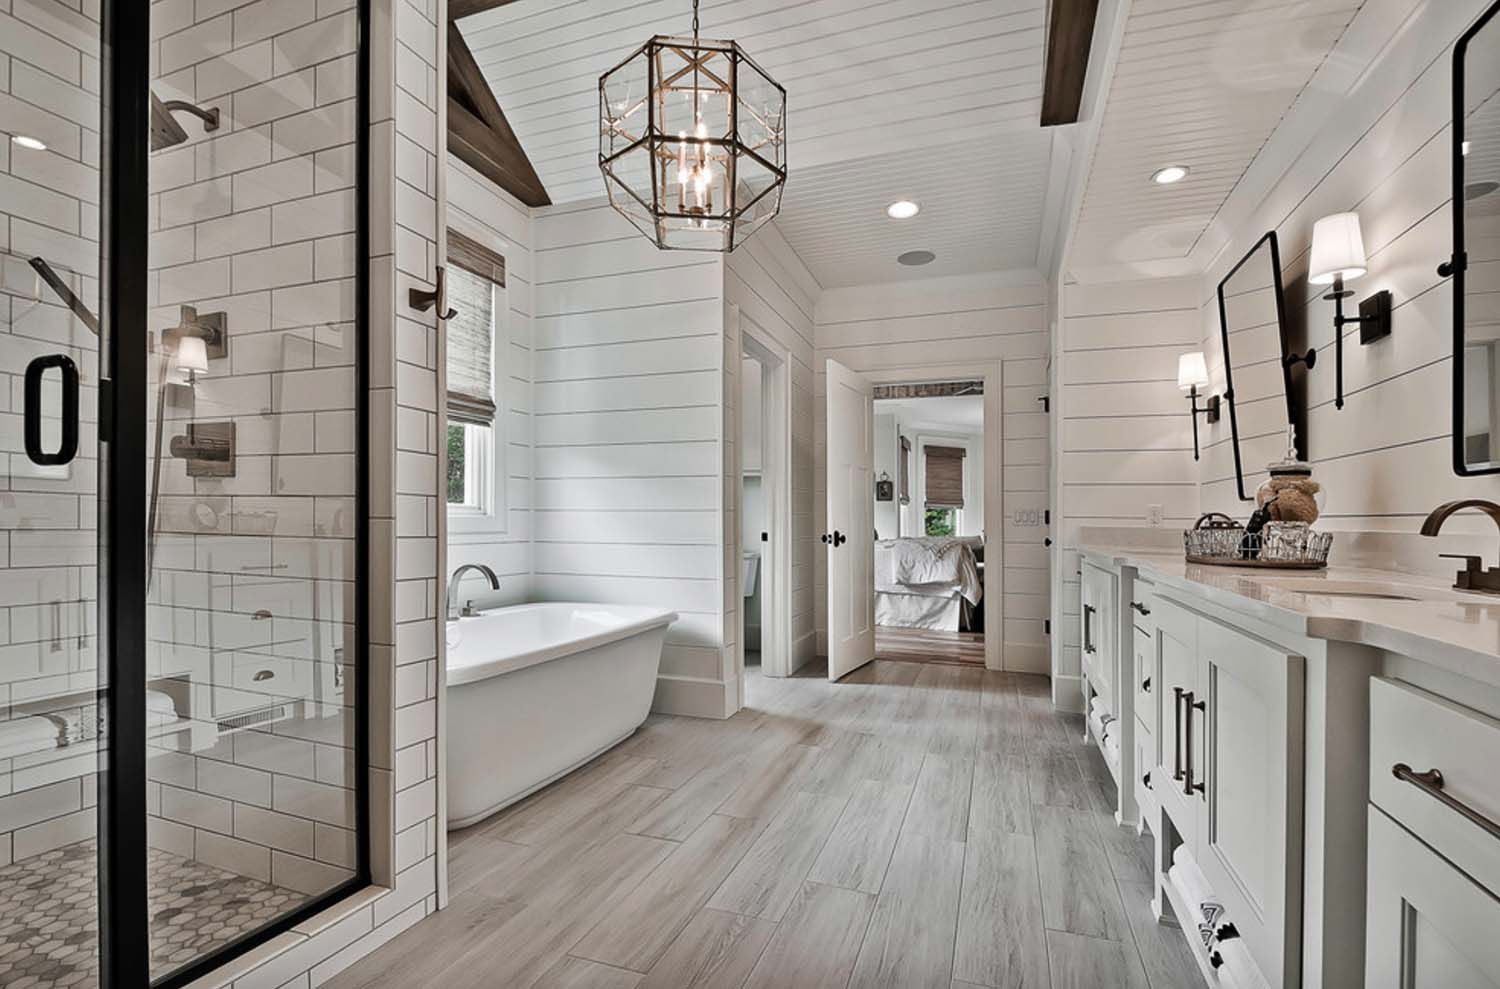 Welcoming craftsman style home with farmhouse touches in Arkansas